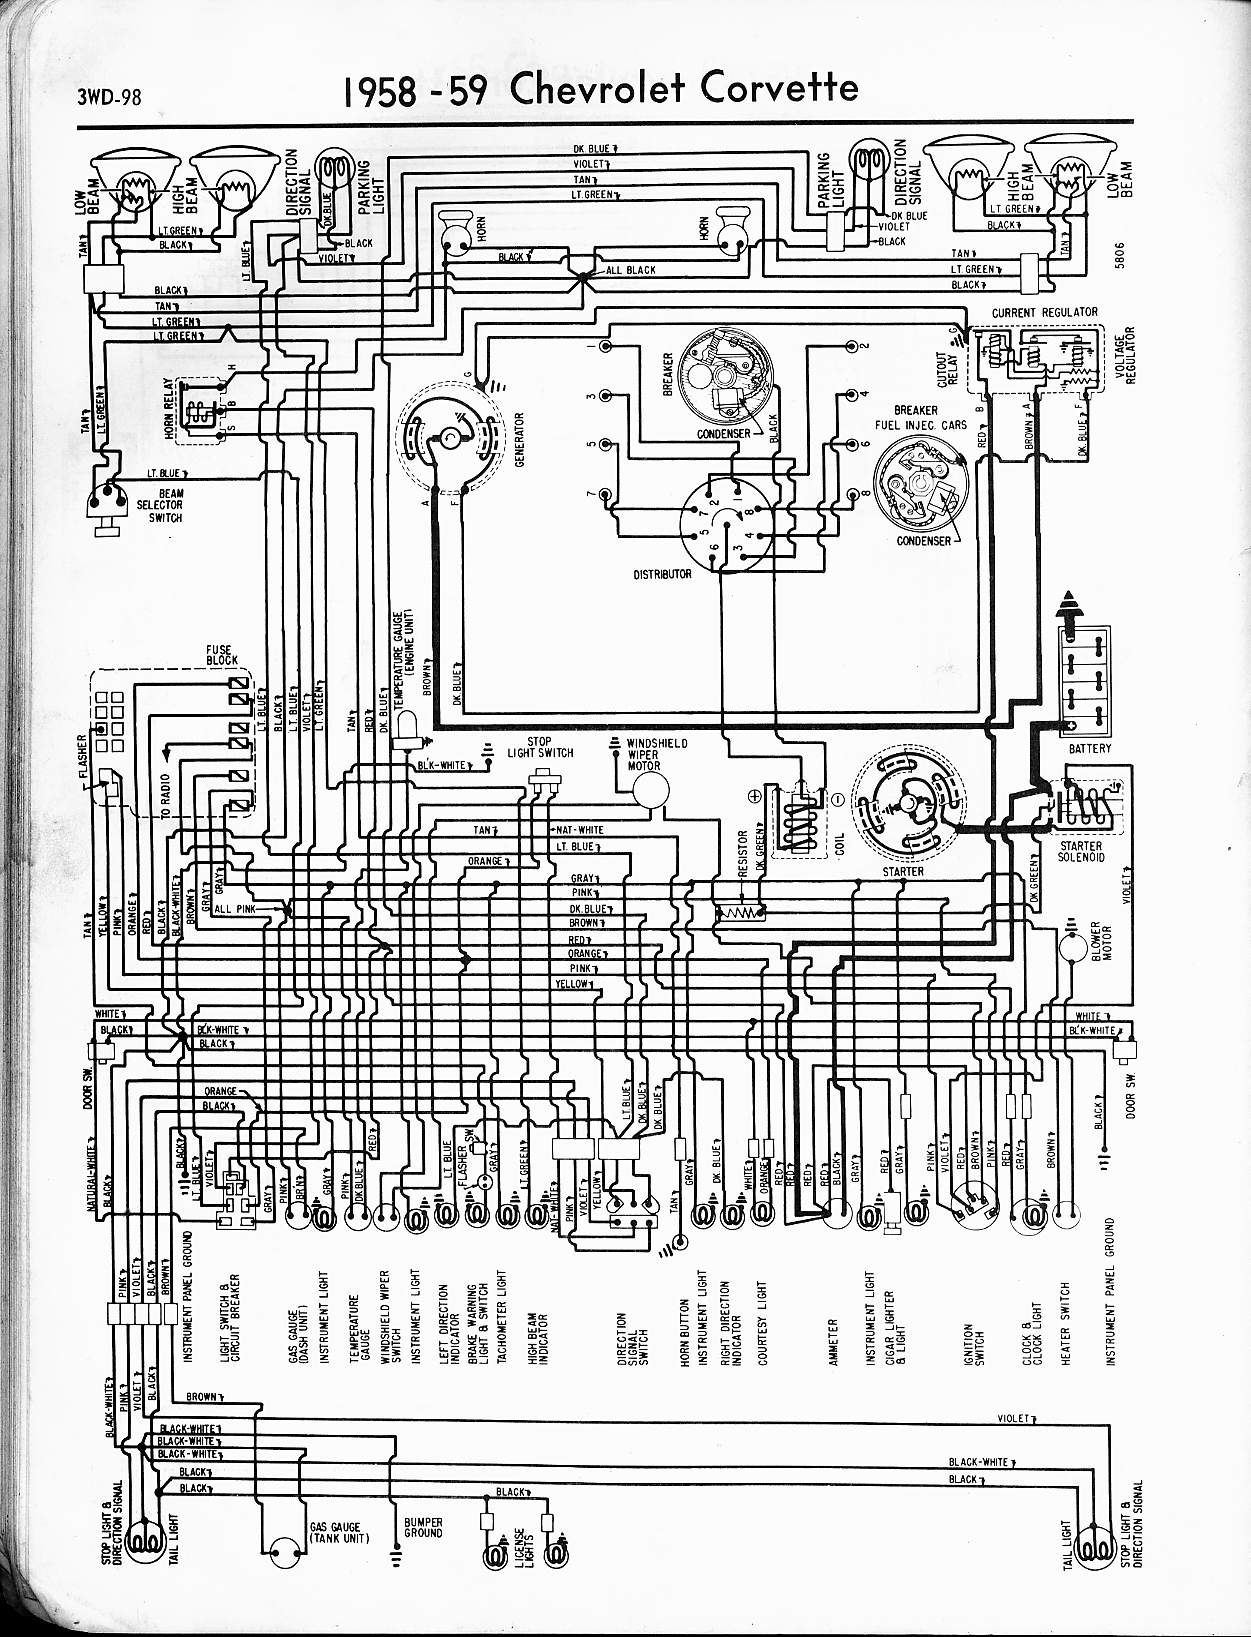 57 65 chevy wiring diagrams General Motors Wiring Colors Chevrolet Wiring Colors #18